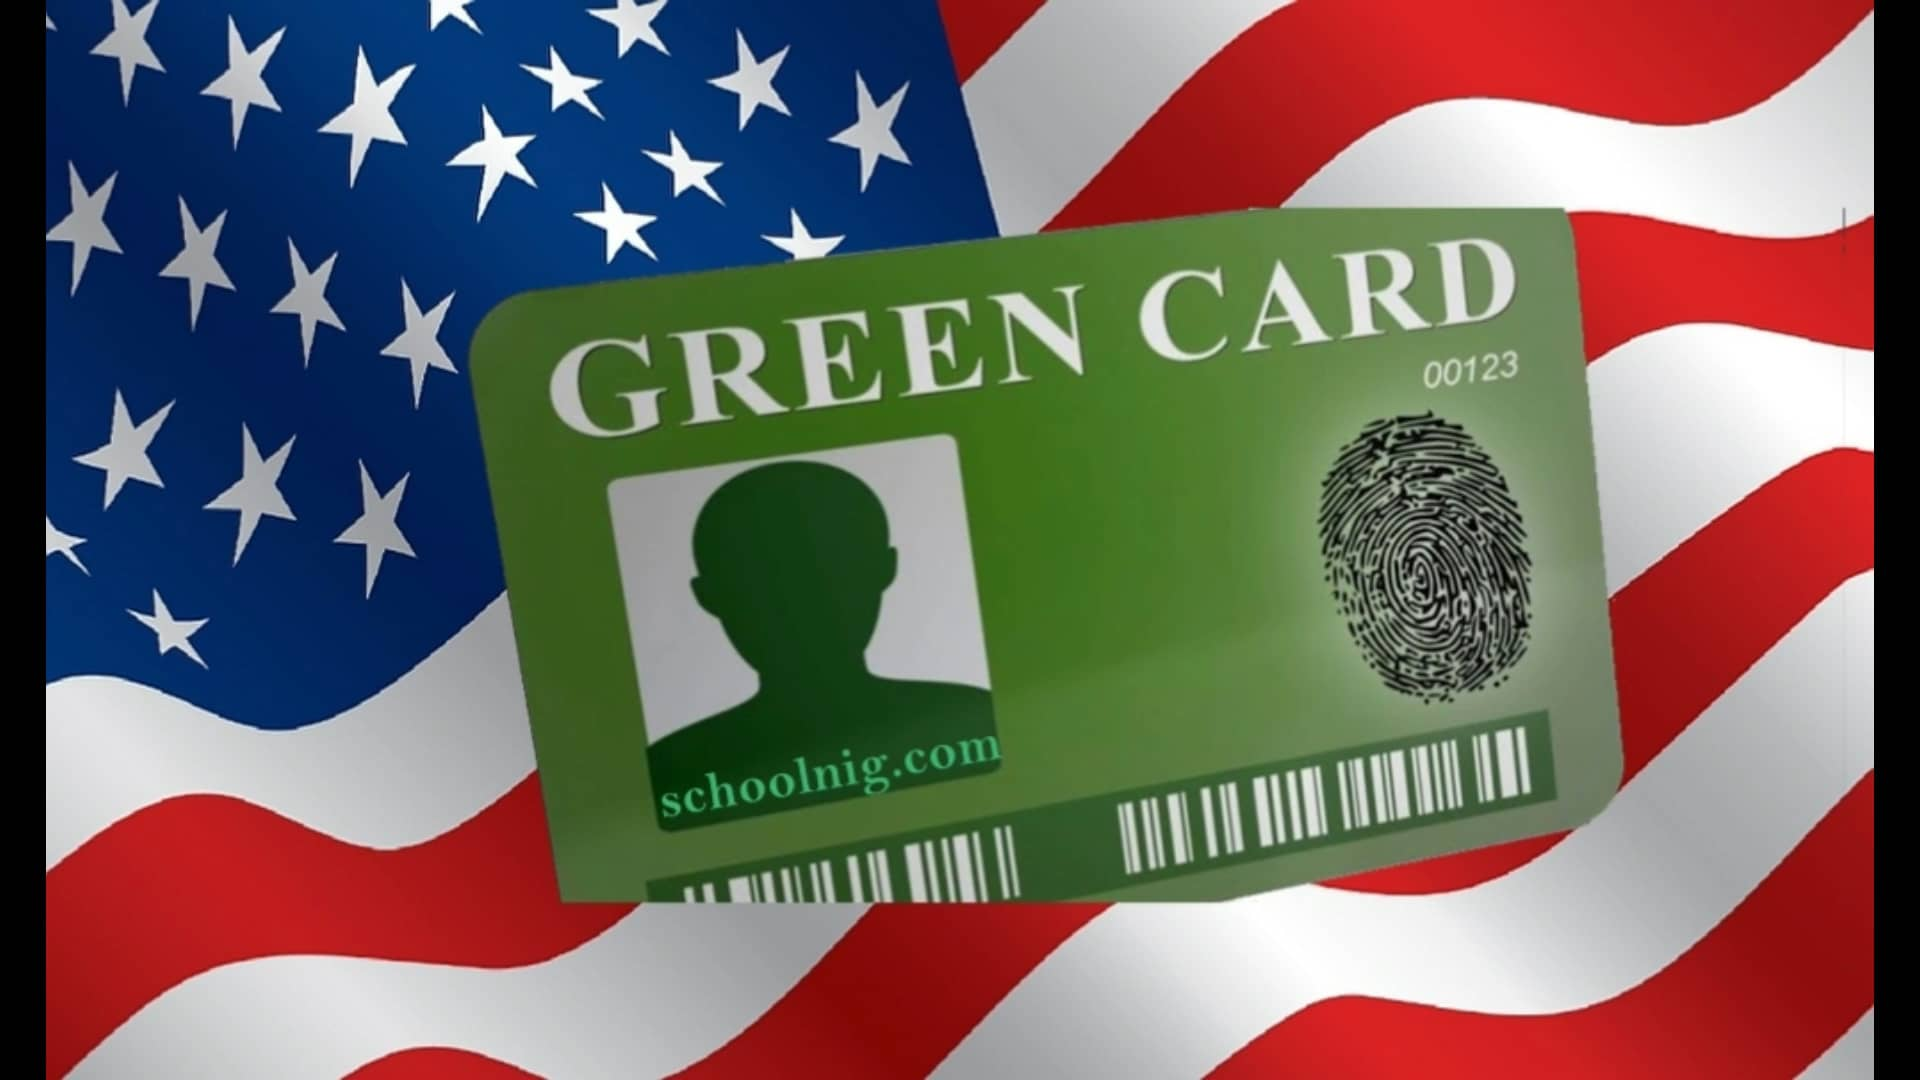 If it seems like your citizenship or green card is taking too long, here's how to check